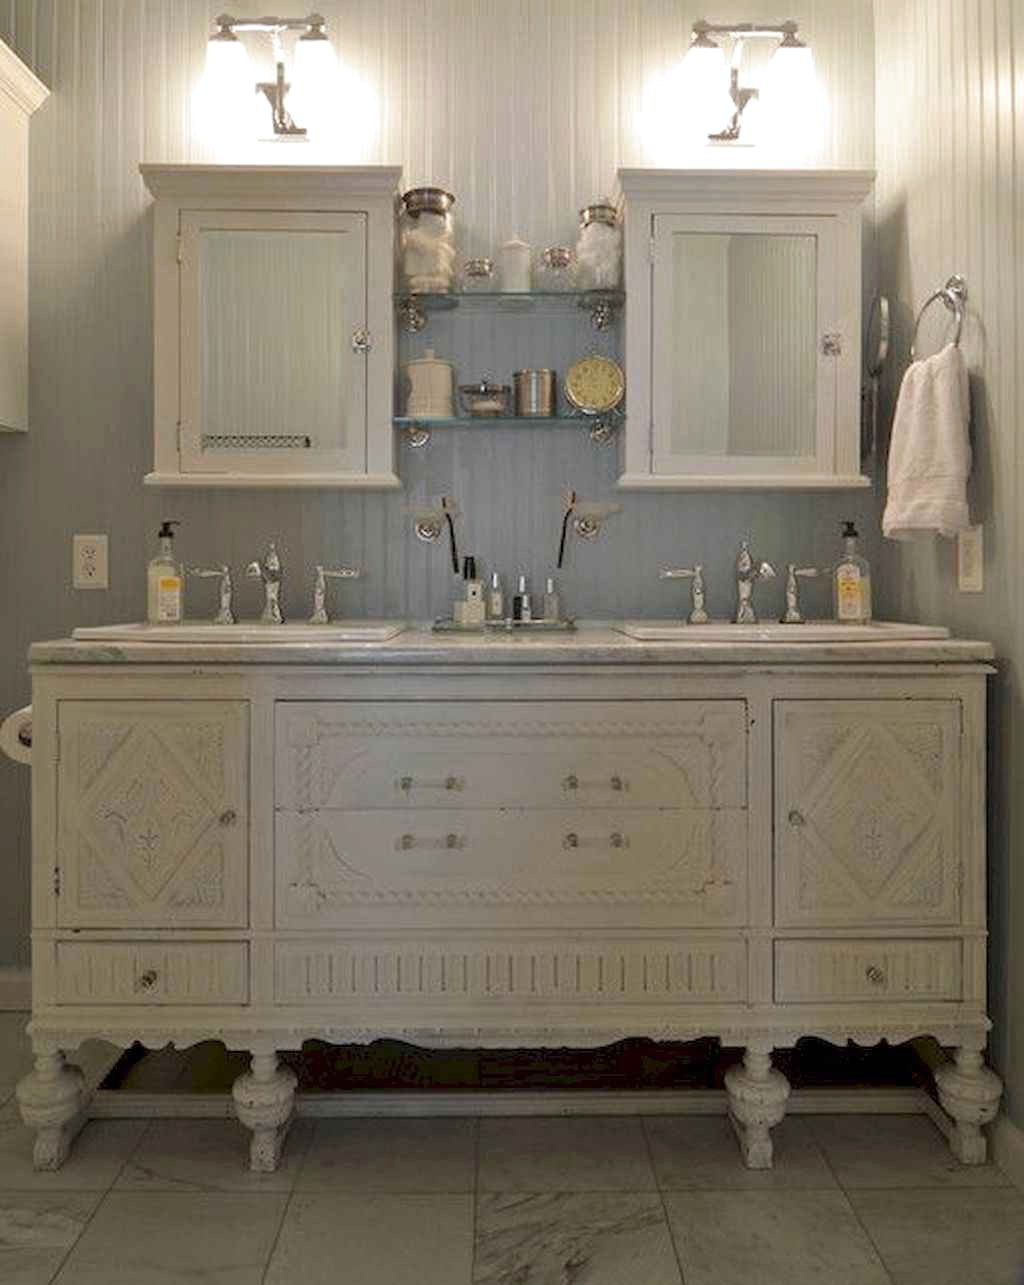 Amazing Farmhouse Bathroom Decor Ideas Exp Decor Shabby Chic Bathroom Vanity Bathroom Vanity Remodel Bathroom Vanity Decor